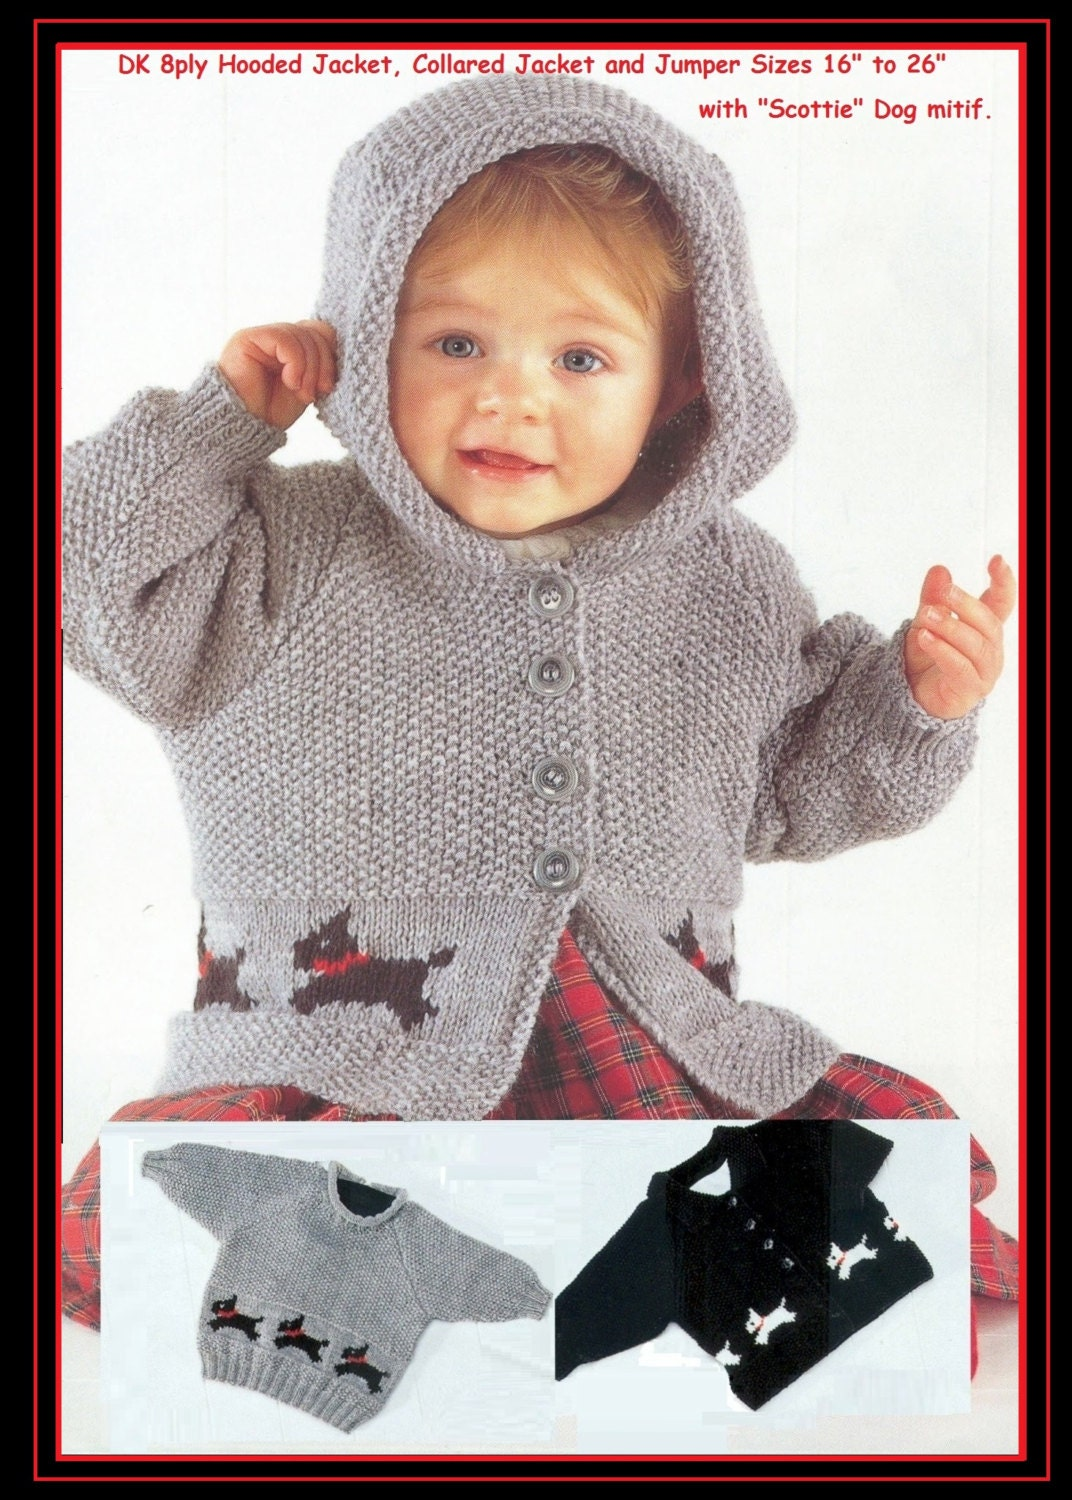 Baby / Childs Hooded Jacket and Sweaters with Scottie Dog